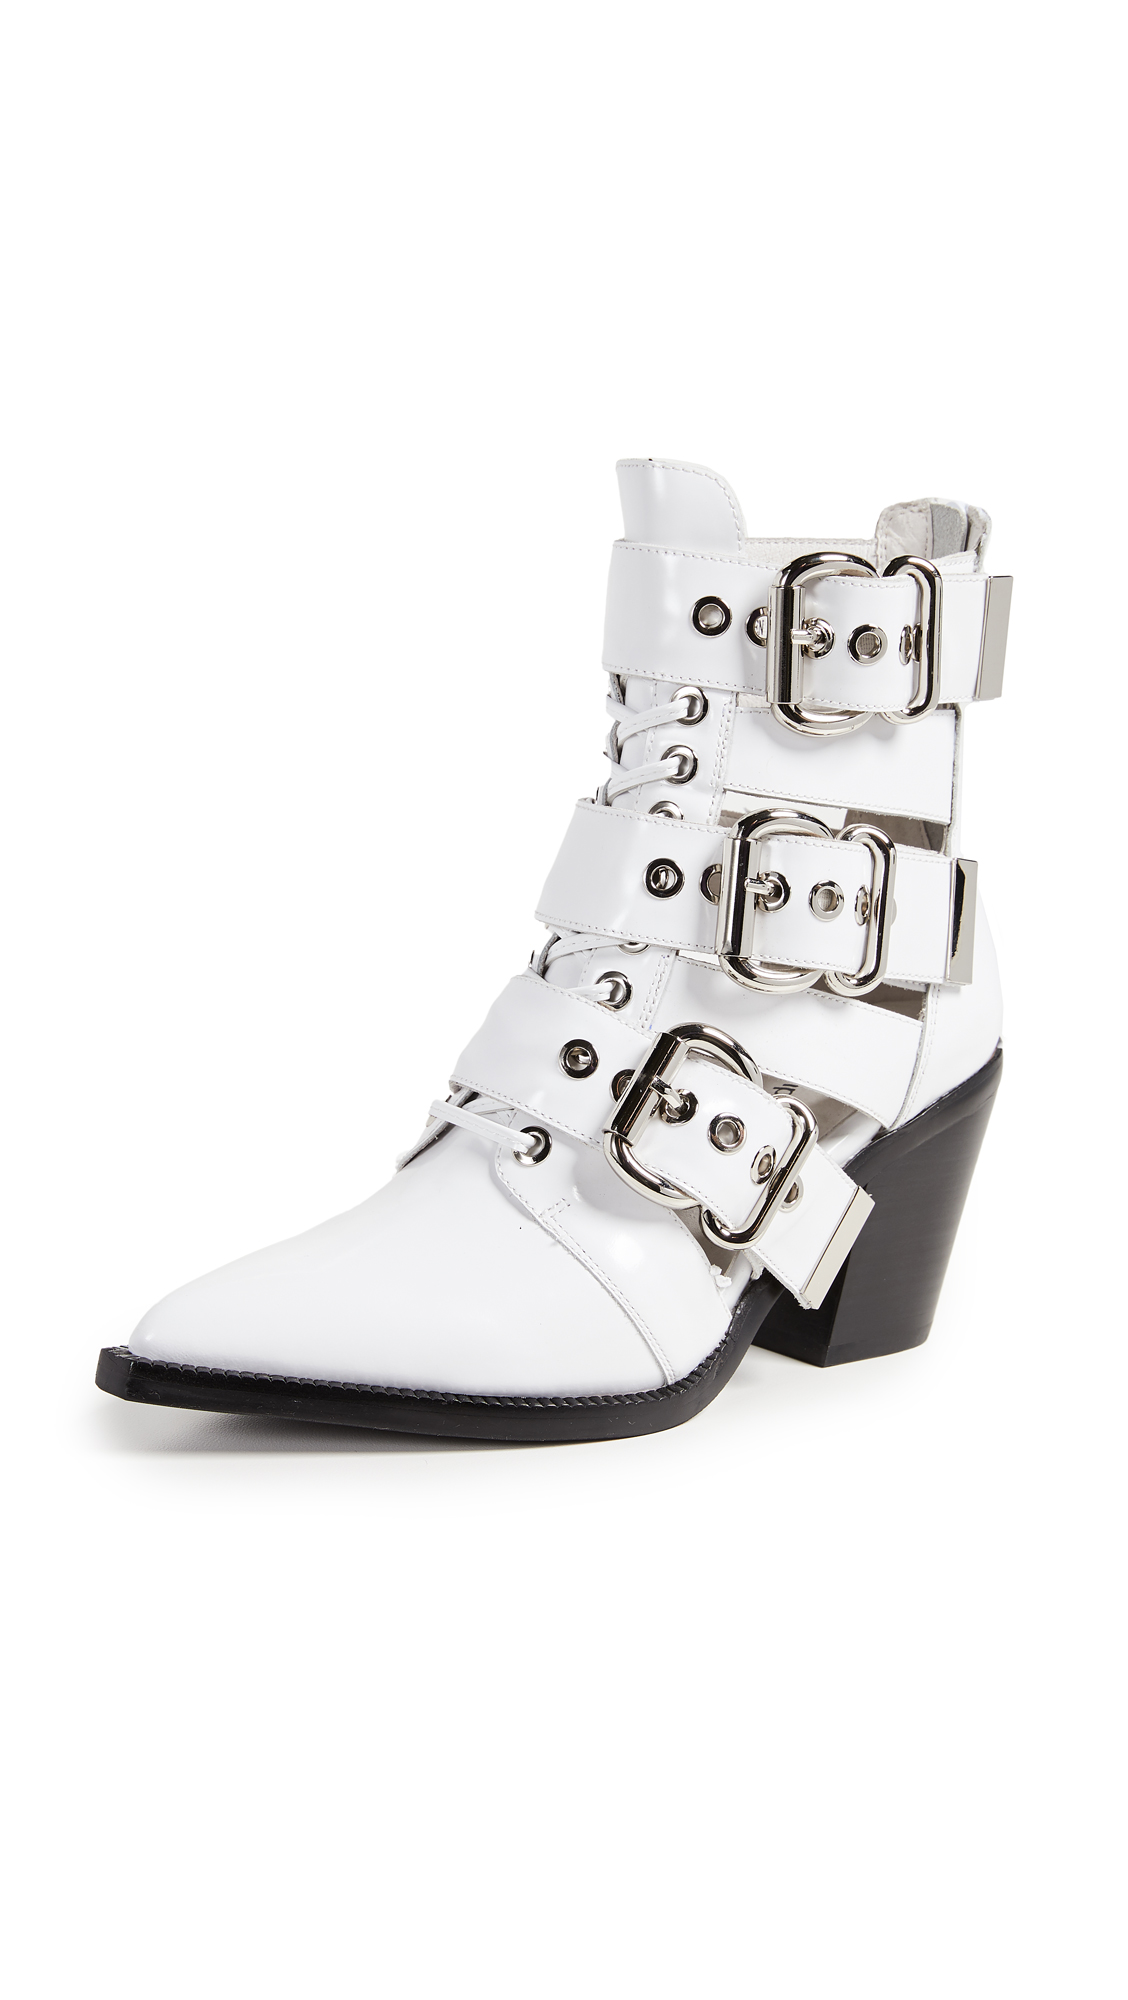 Jeffrey Campbell Caceres Buckle Booties - White Box